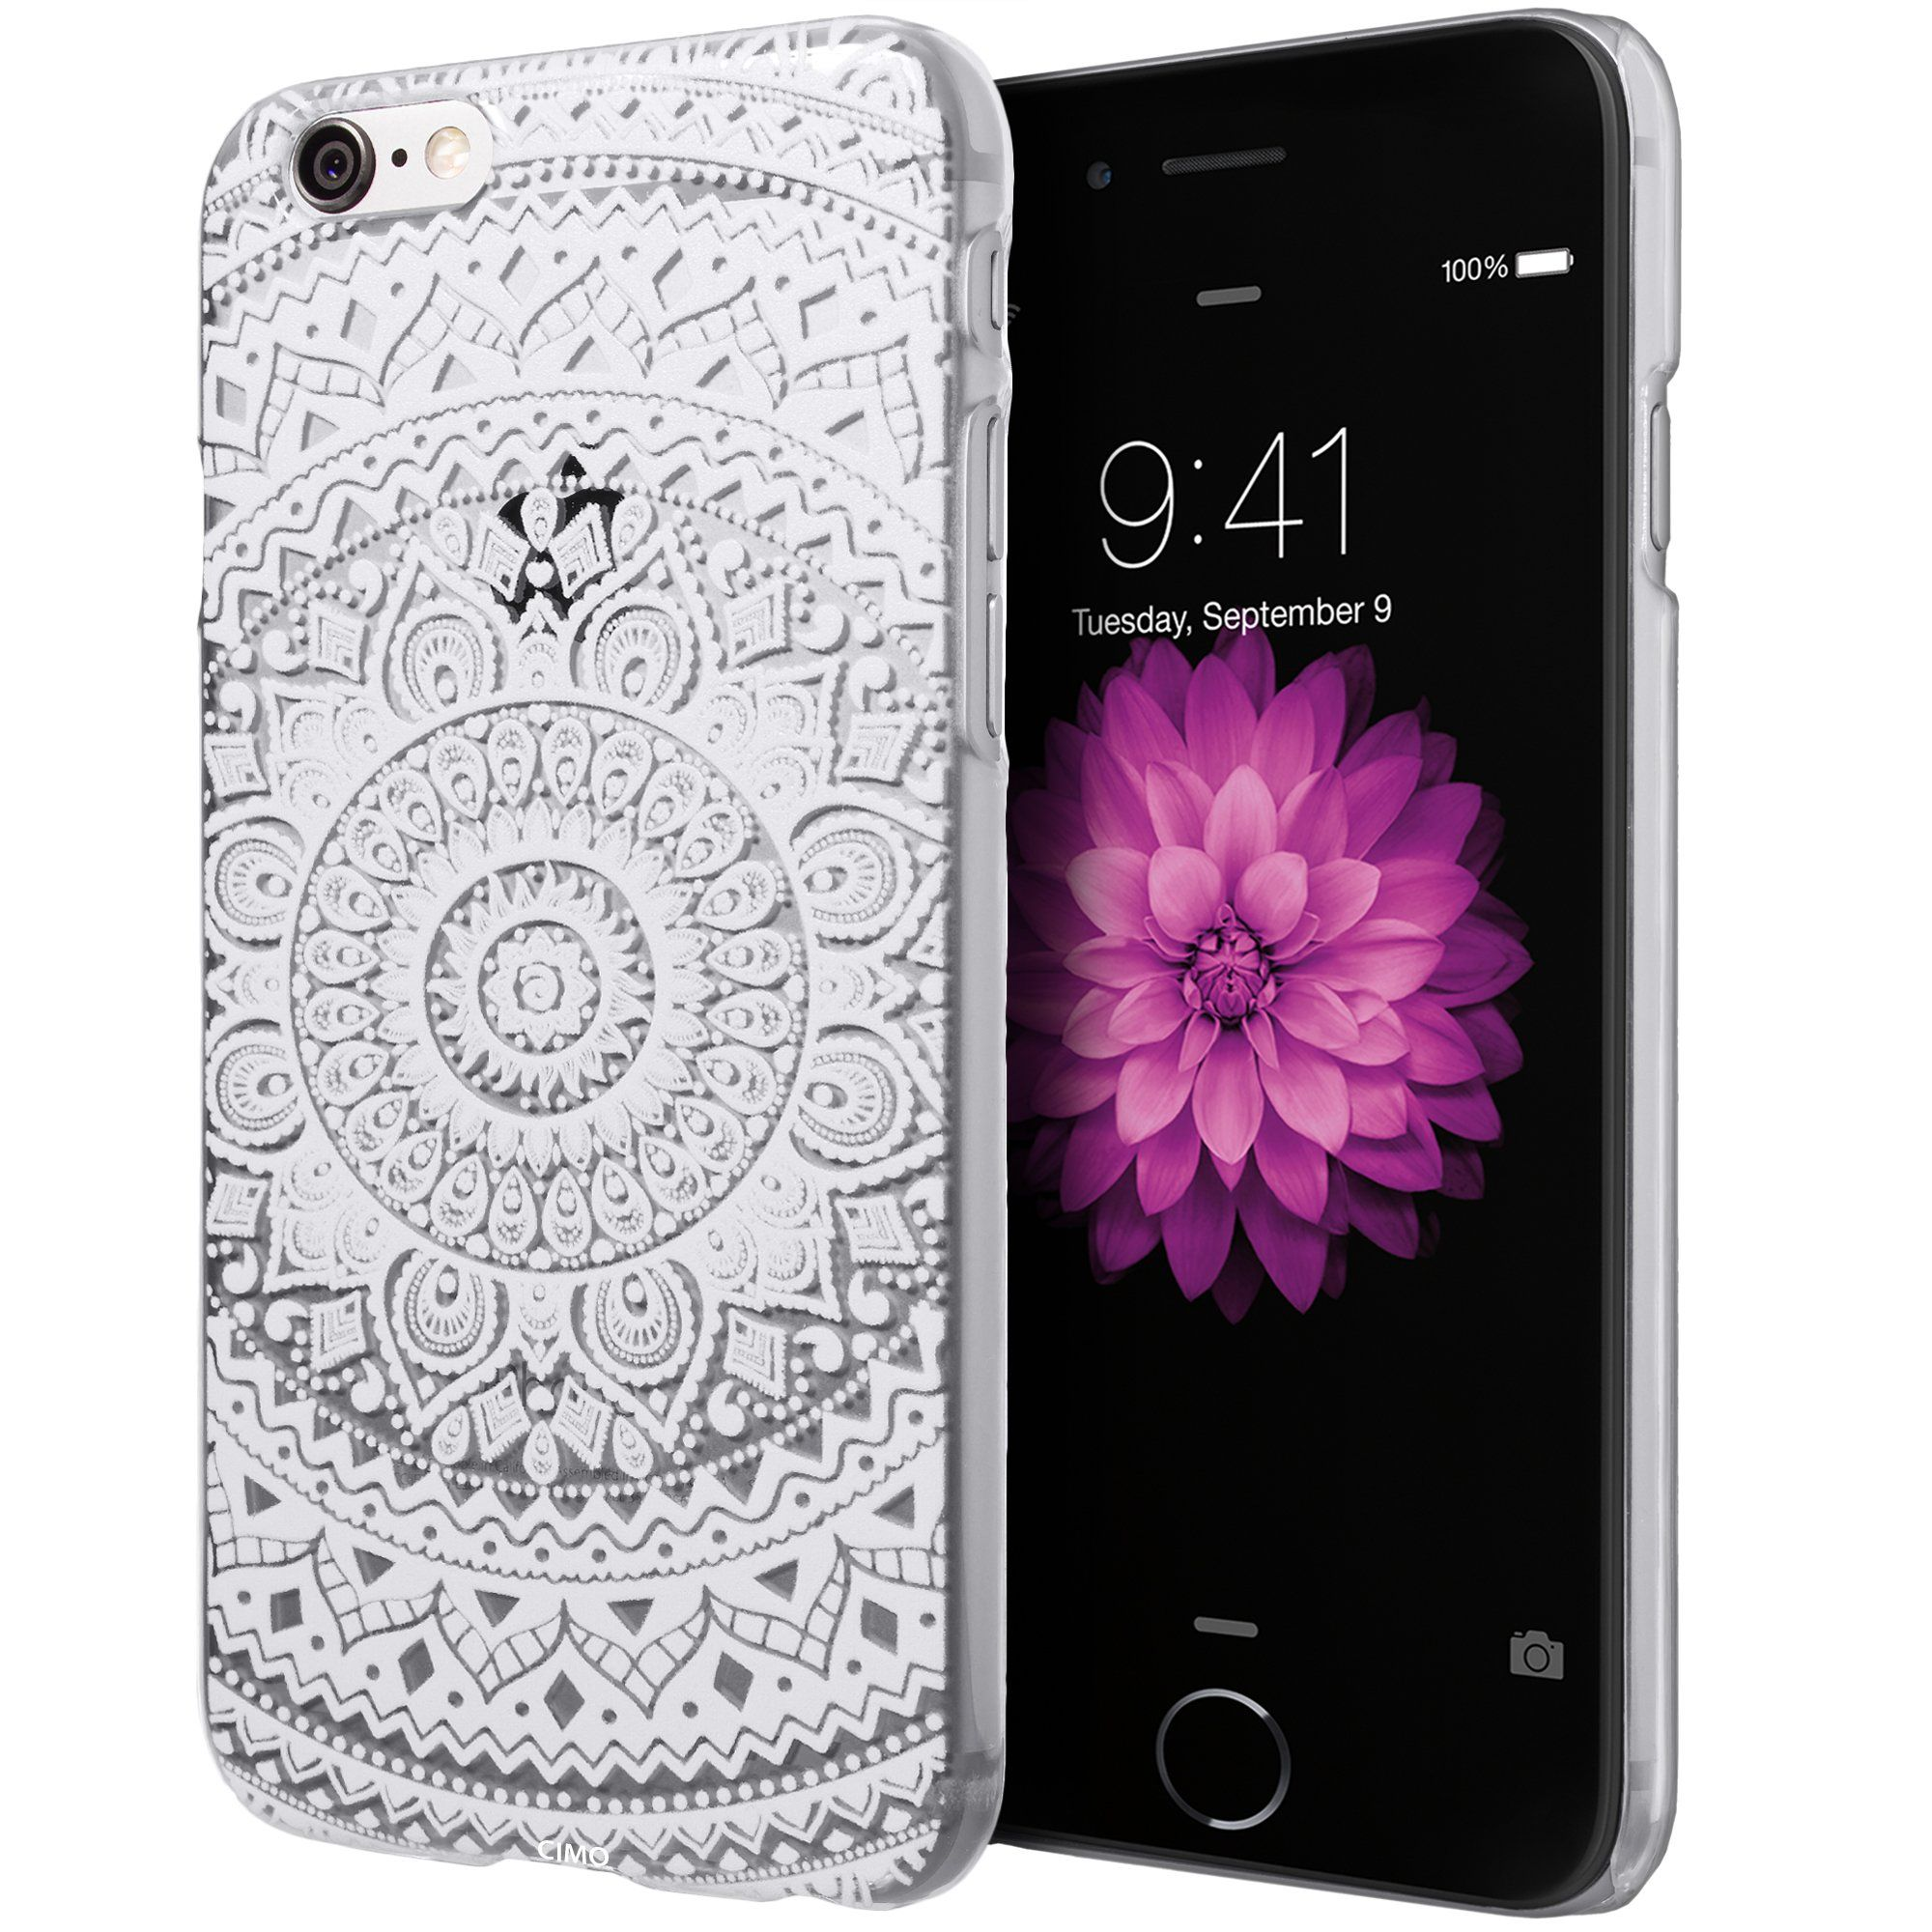 Iphone 6 case cimo henna apple iphone 6 for Case design